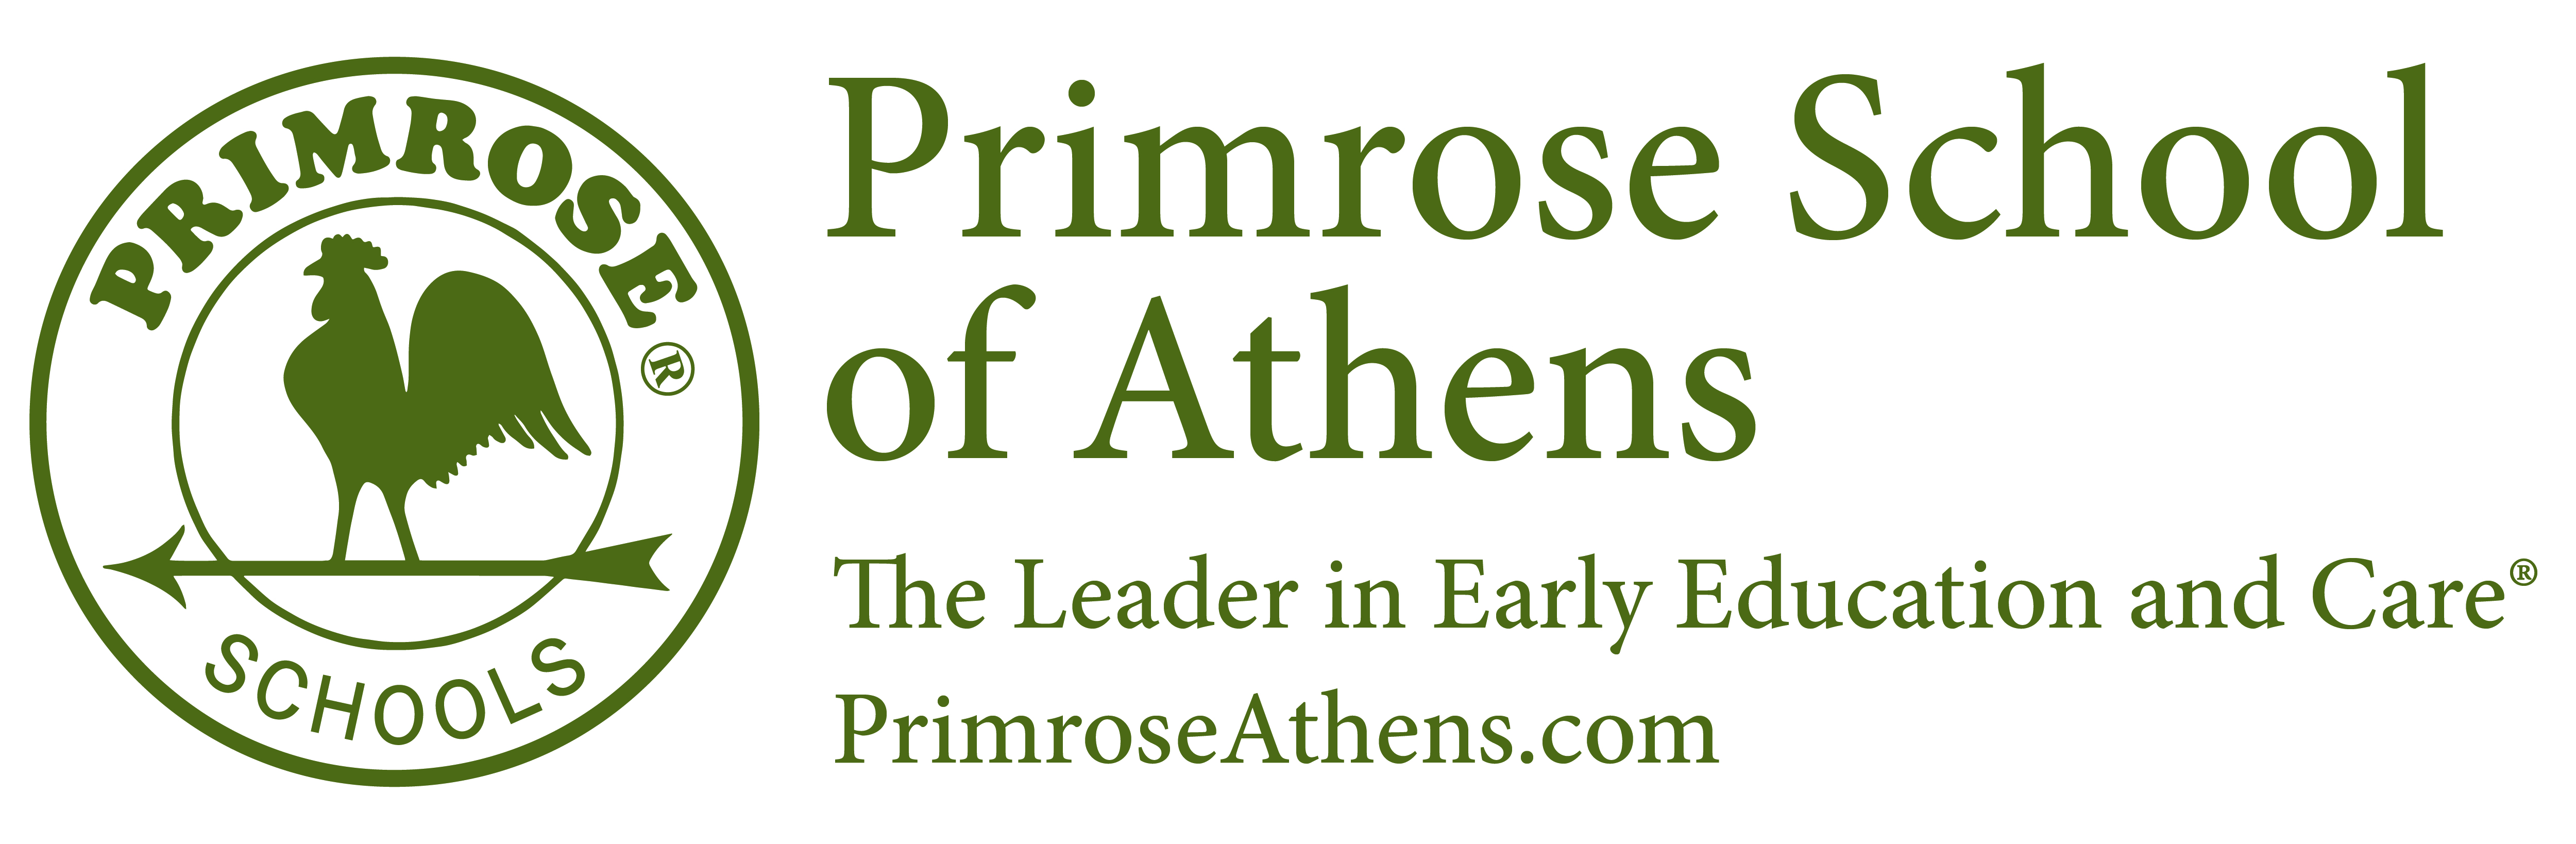 Assistant Teacher in Athens, GA, USA - BarefootStudent com